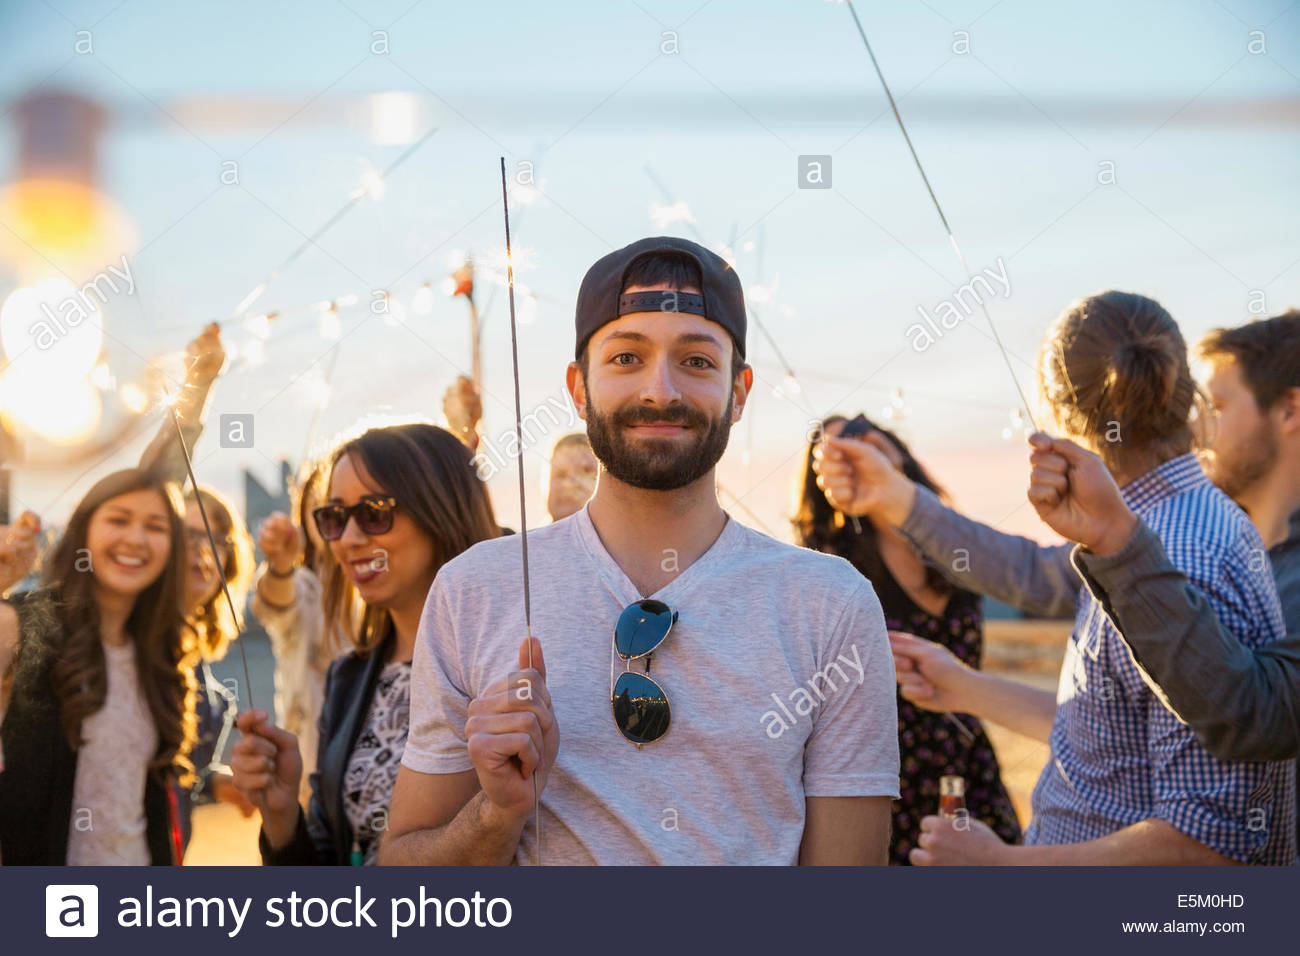 Portrait of smiling man with sparkler at party Photo Stock